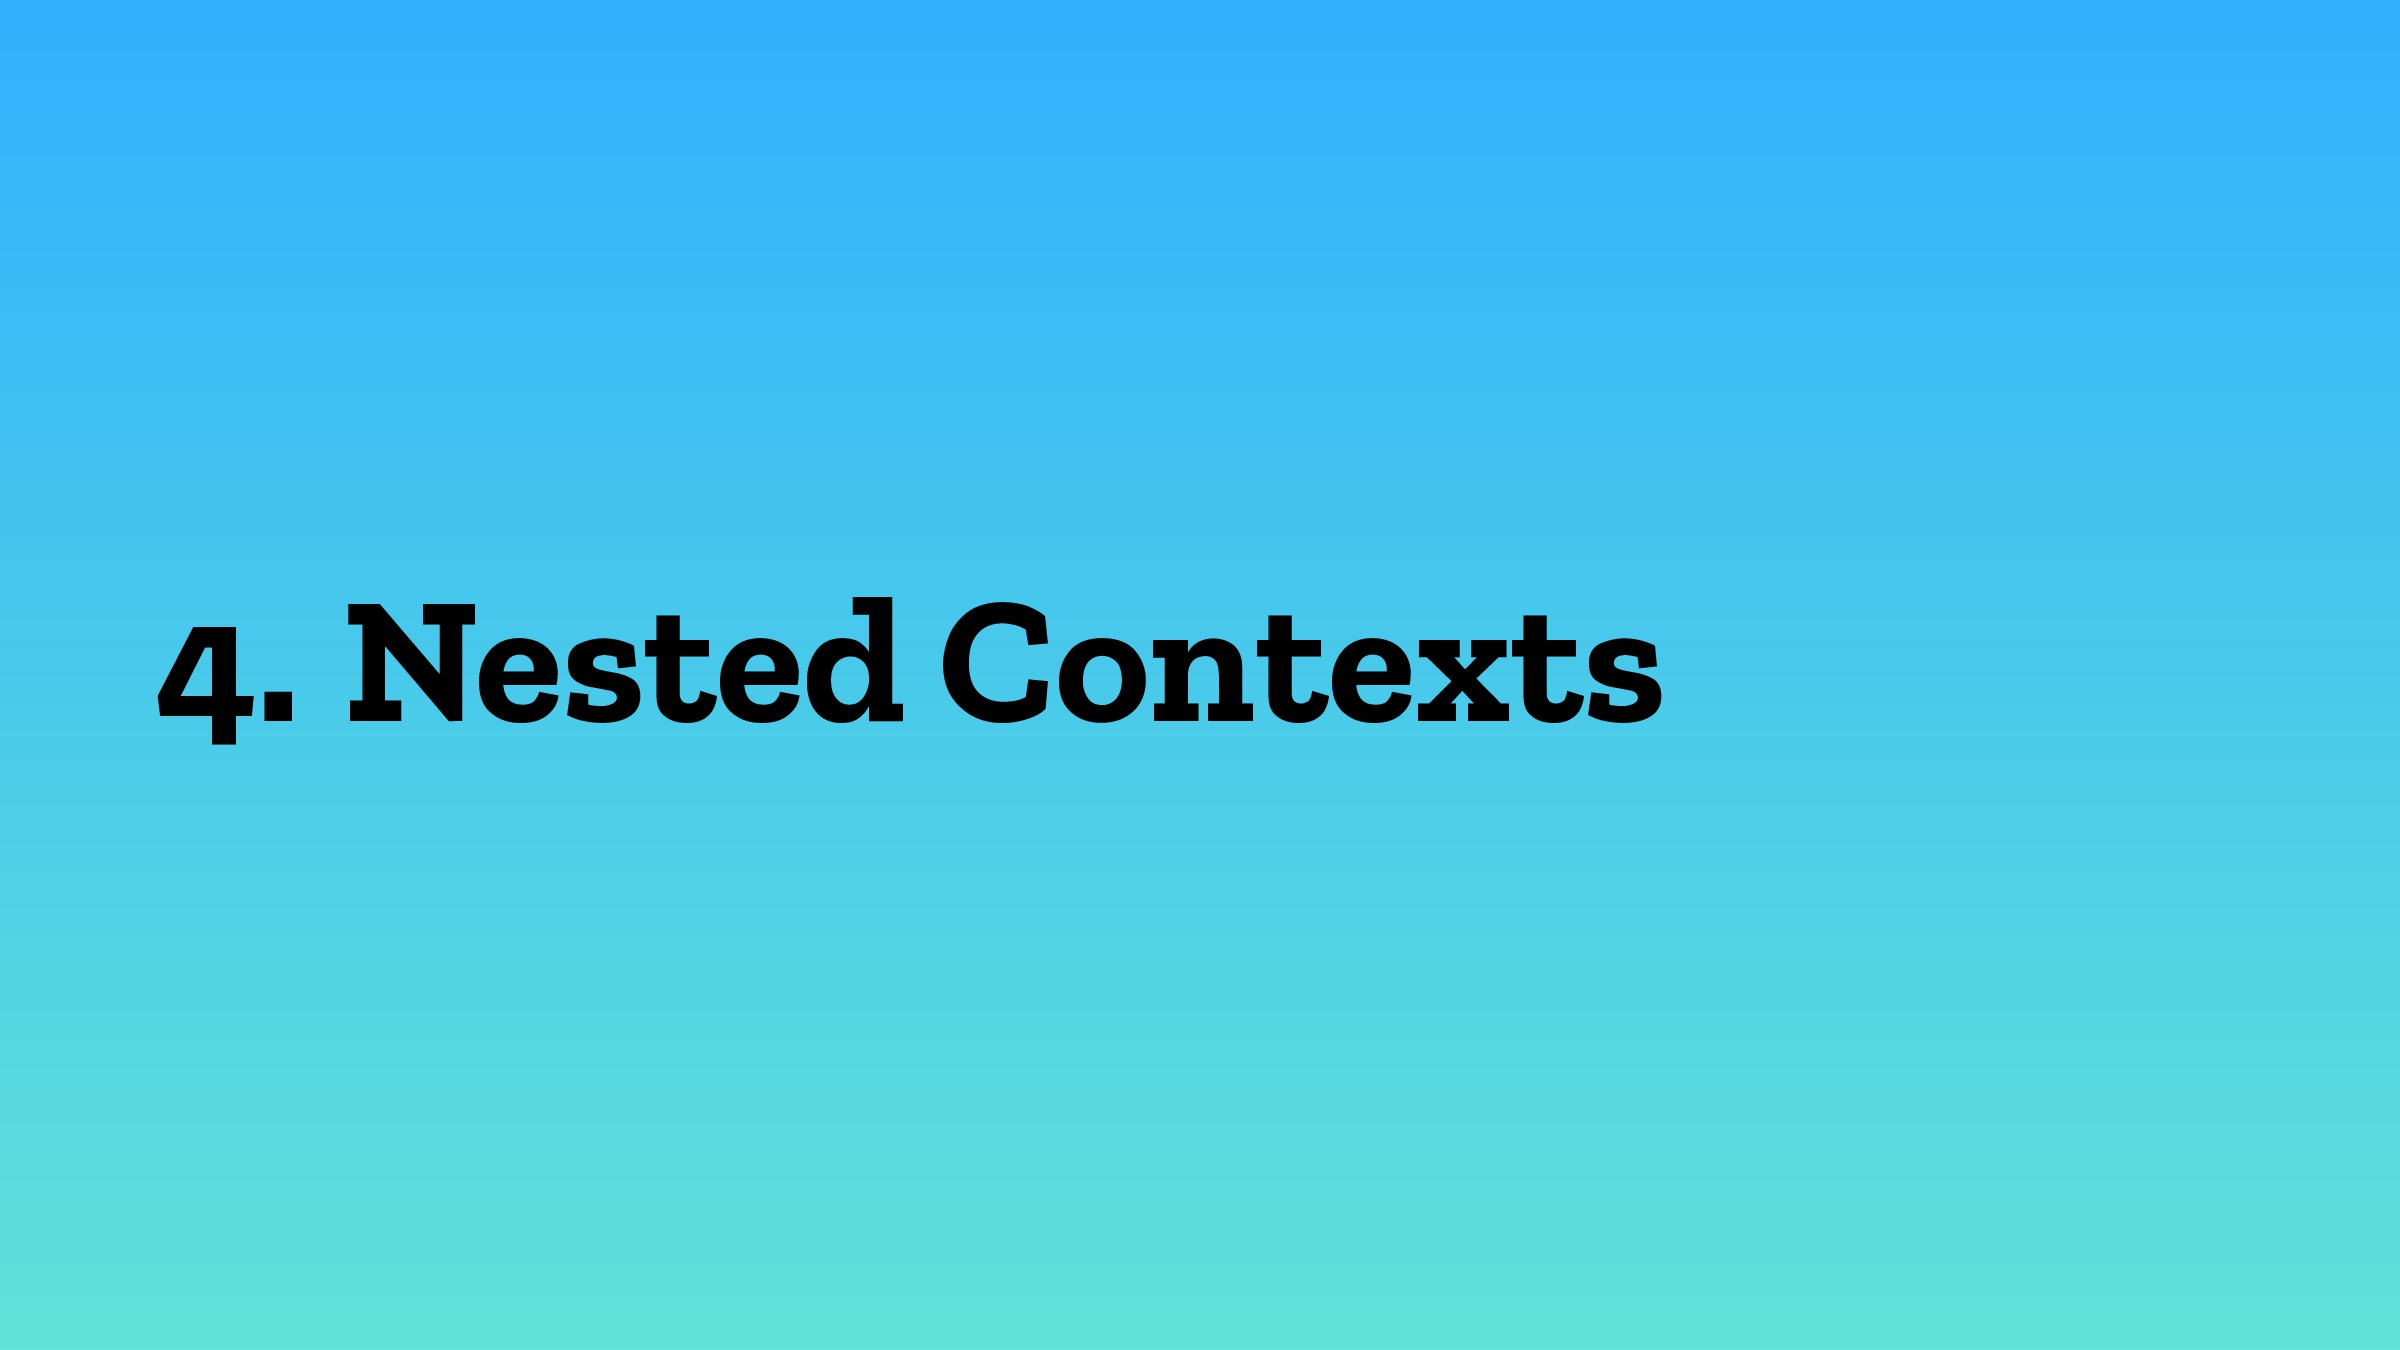 4. Nested Contexts